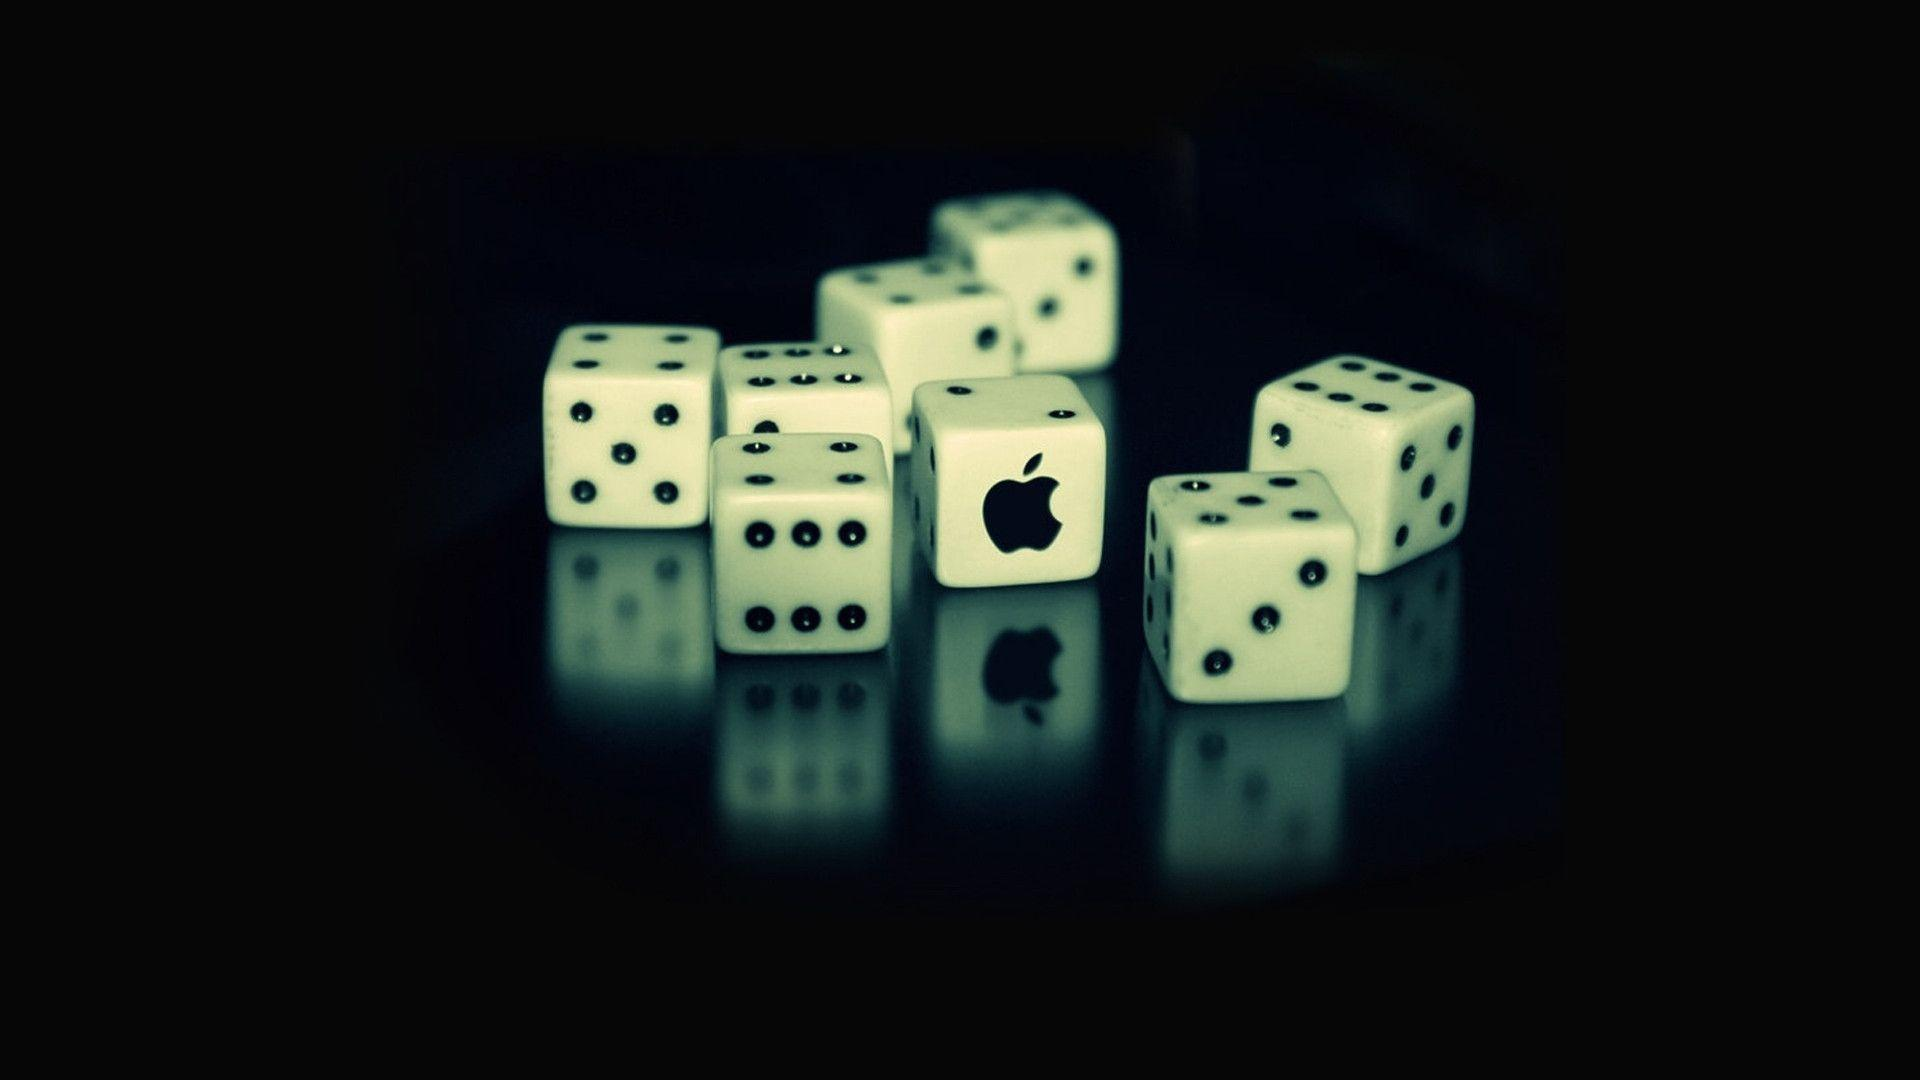 1080p HD Wallpapers Dices And Apple Dices Image